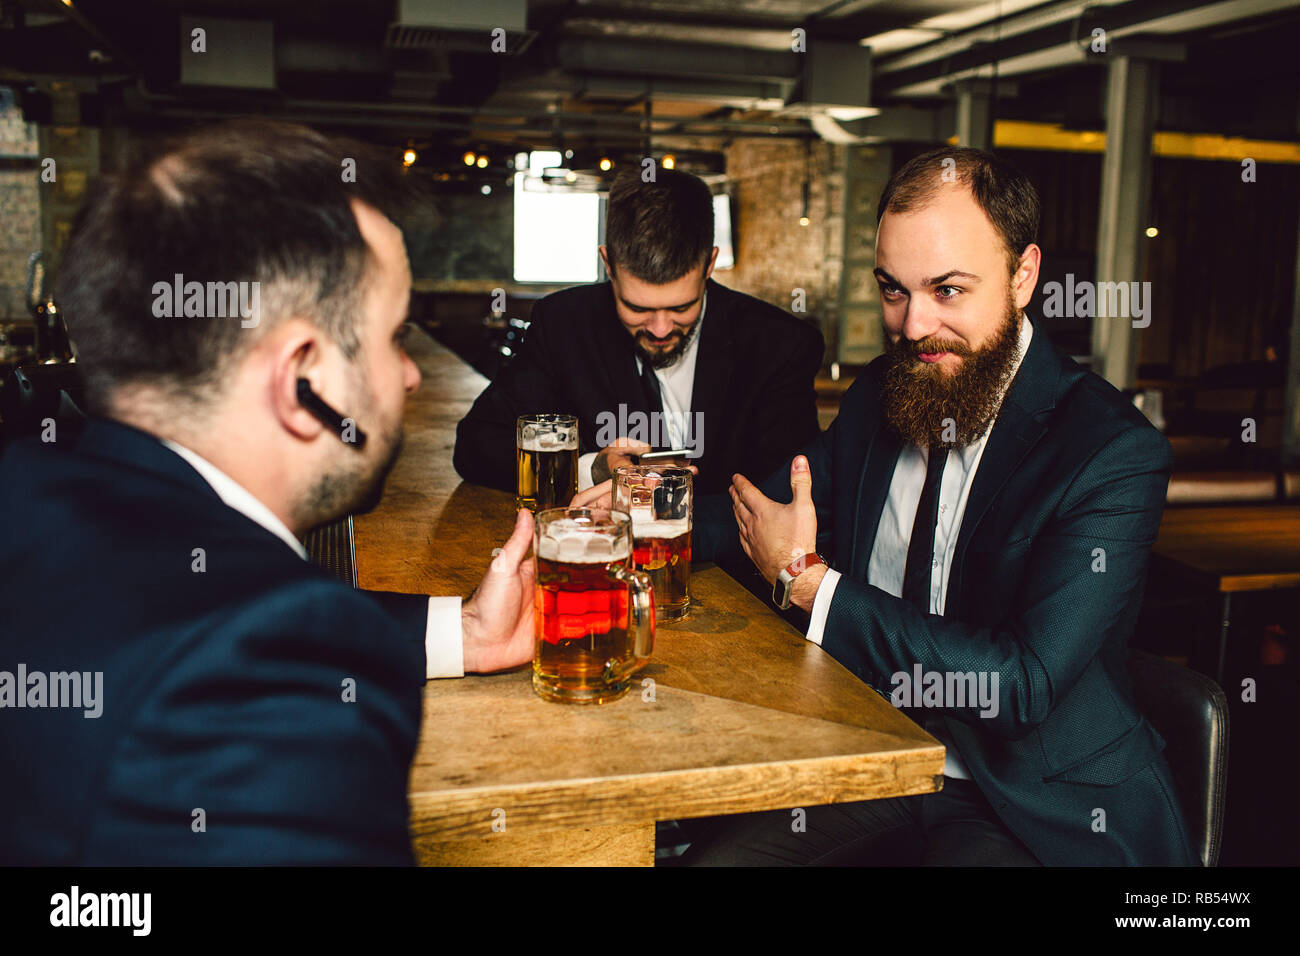 Positive young bsinessmen in suits sit together at table. They hold mugs of beer. Guy in front has balck headphone in ear. Men are in bar. - Stock Image